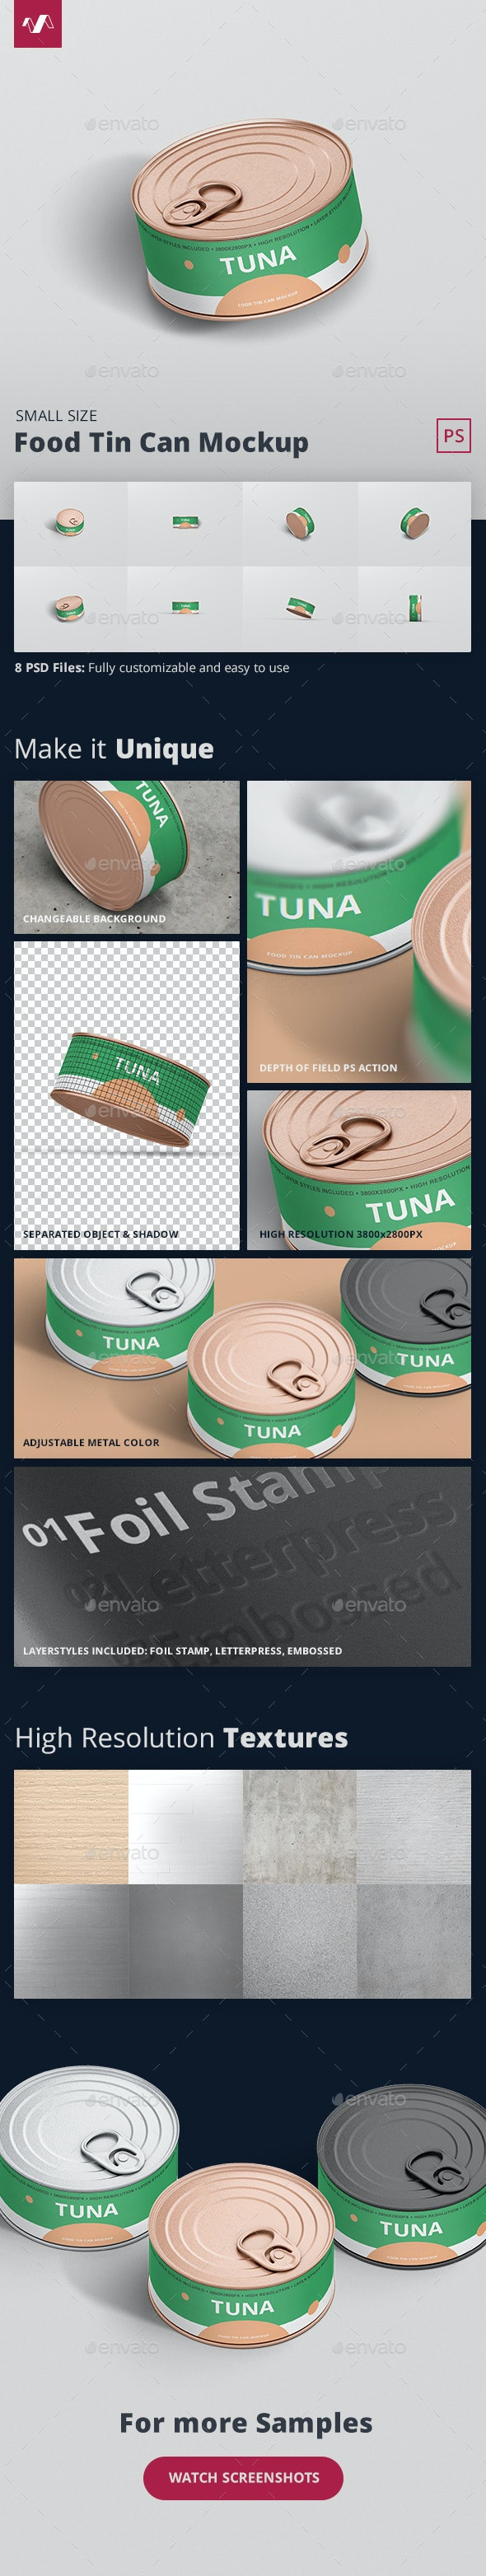 Food Tin Can Mockup Small Size - Food and Drink Packaging